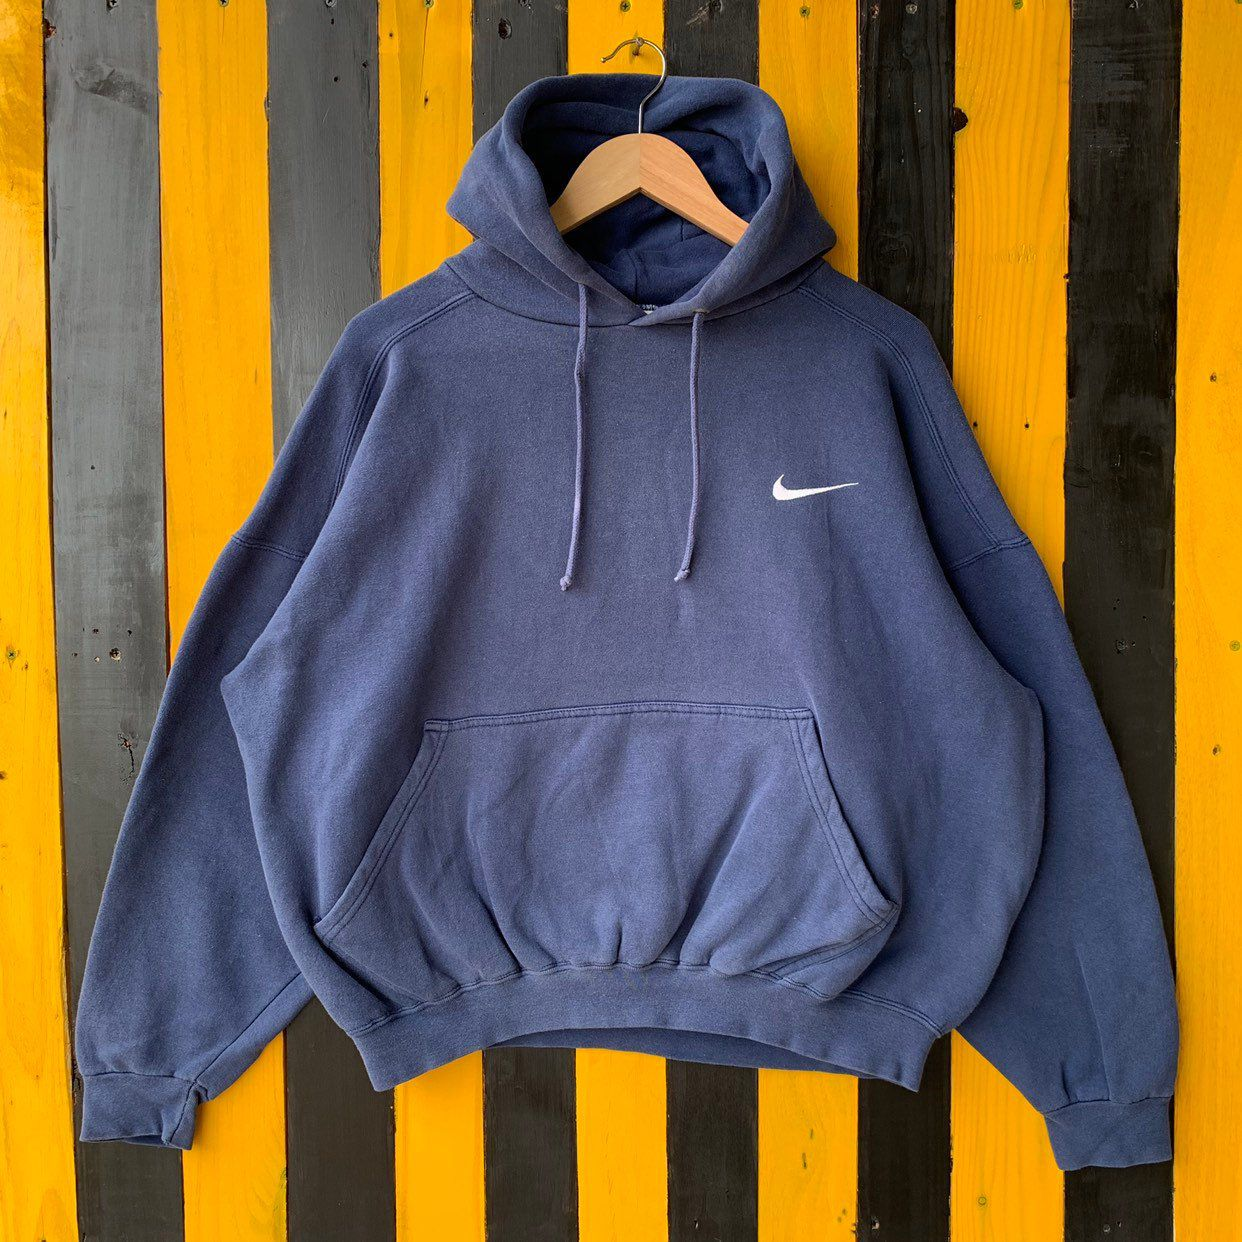 Excited To Share The Latest Addition To My Etsy Shop Vintage 90s Nike Small Swoosh Embroidered Hoodie Jumper Pullover Vintage Hoodies Clothes Trendy Hoodies